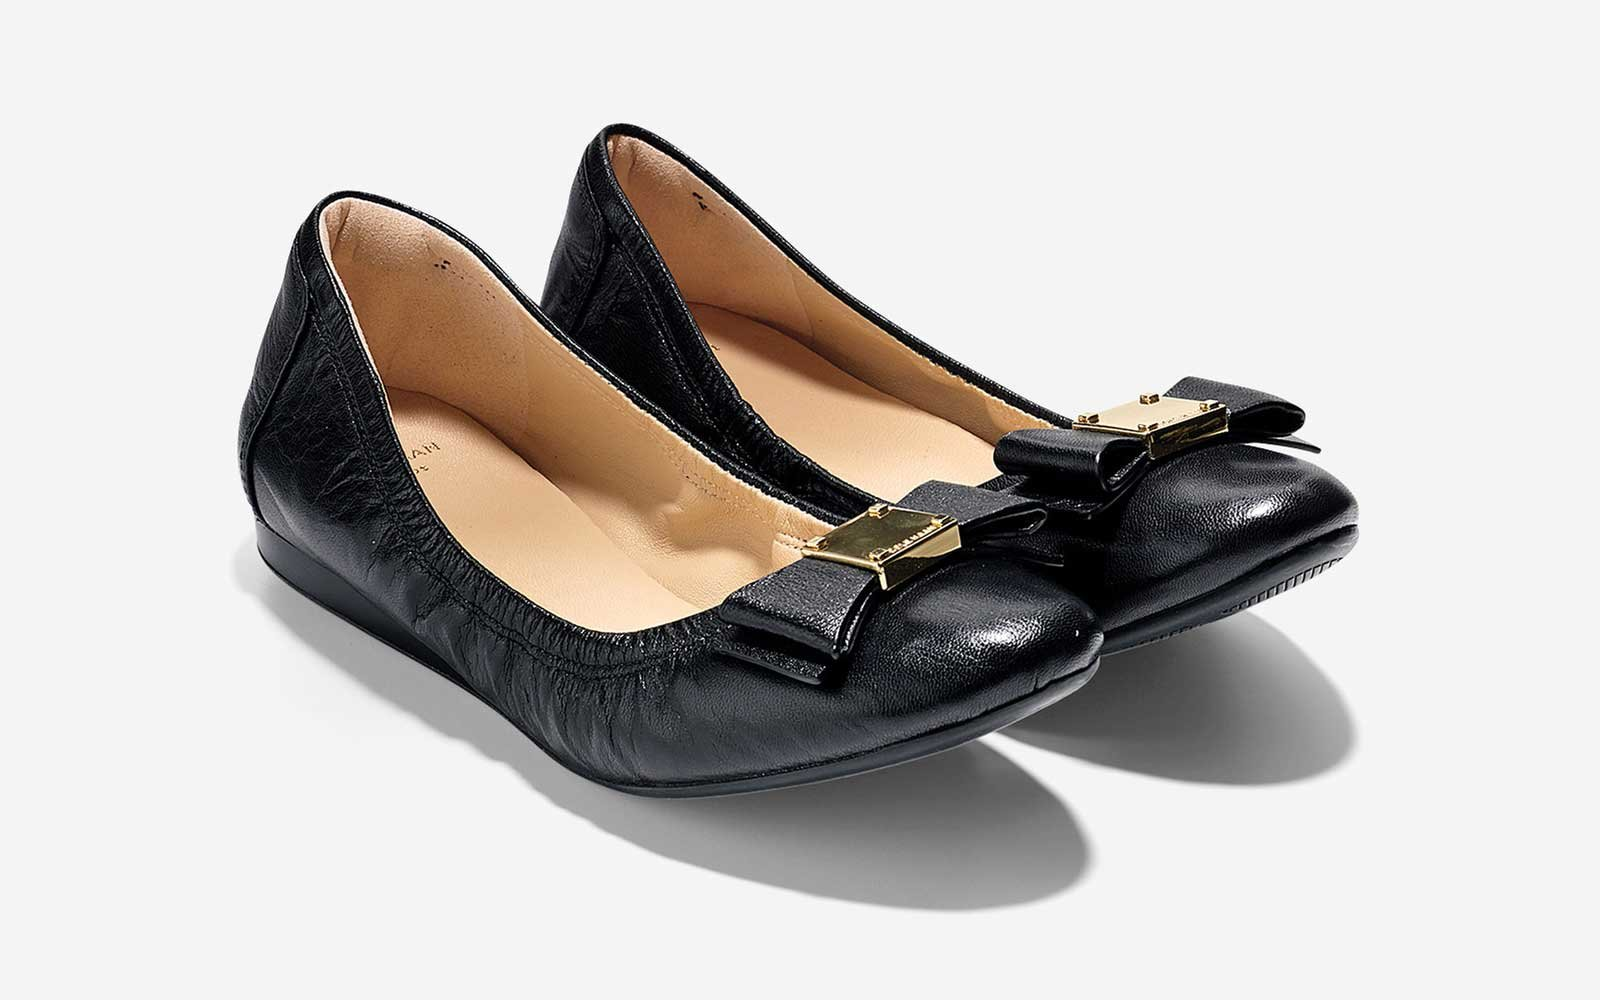 cole haan shoes thailand vacations all-inclusive 701914